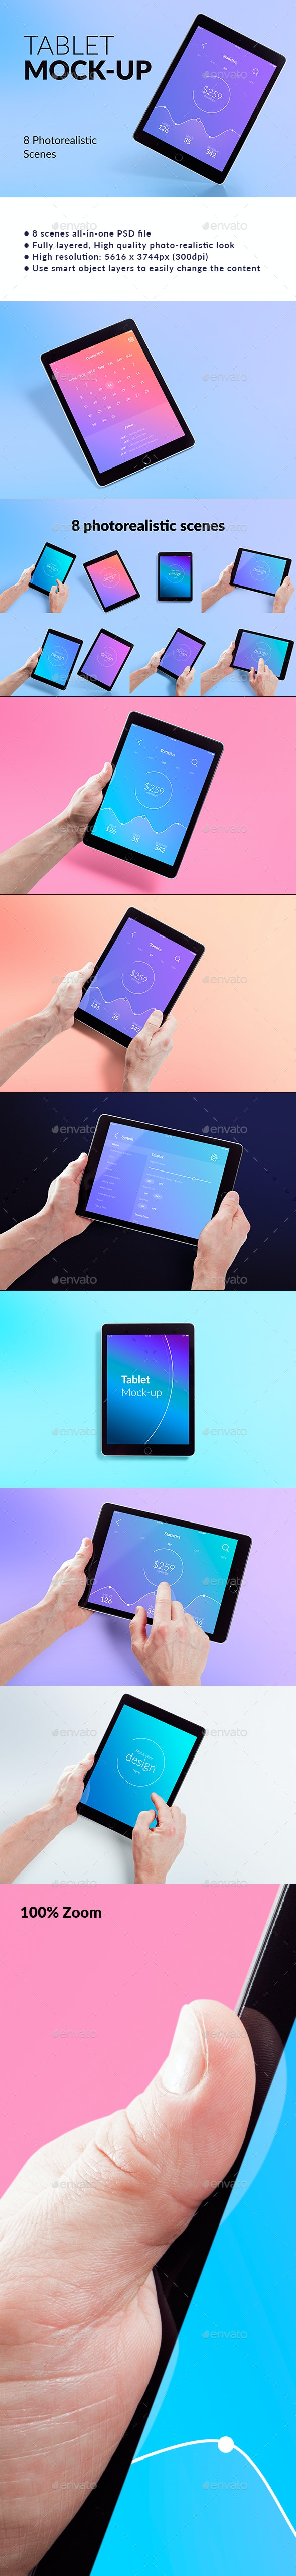 Isolated Tablet Mock-up - Mobile Displays